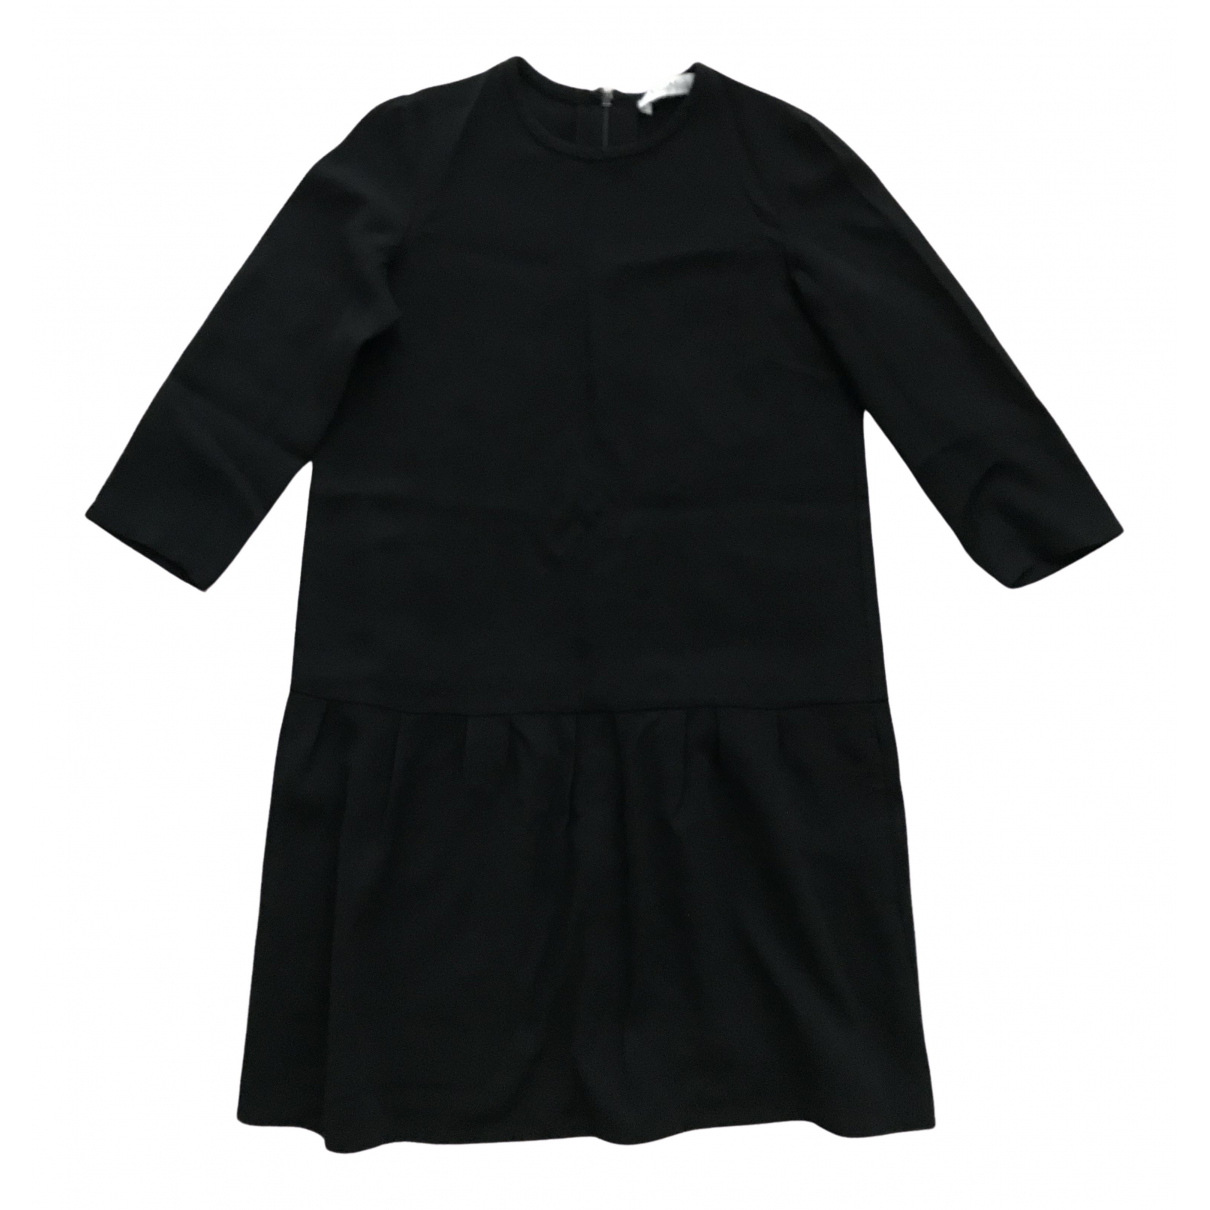 Max Mara \N Black dress for Women 38 IT